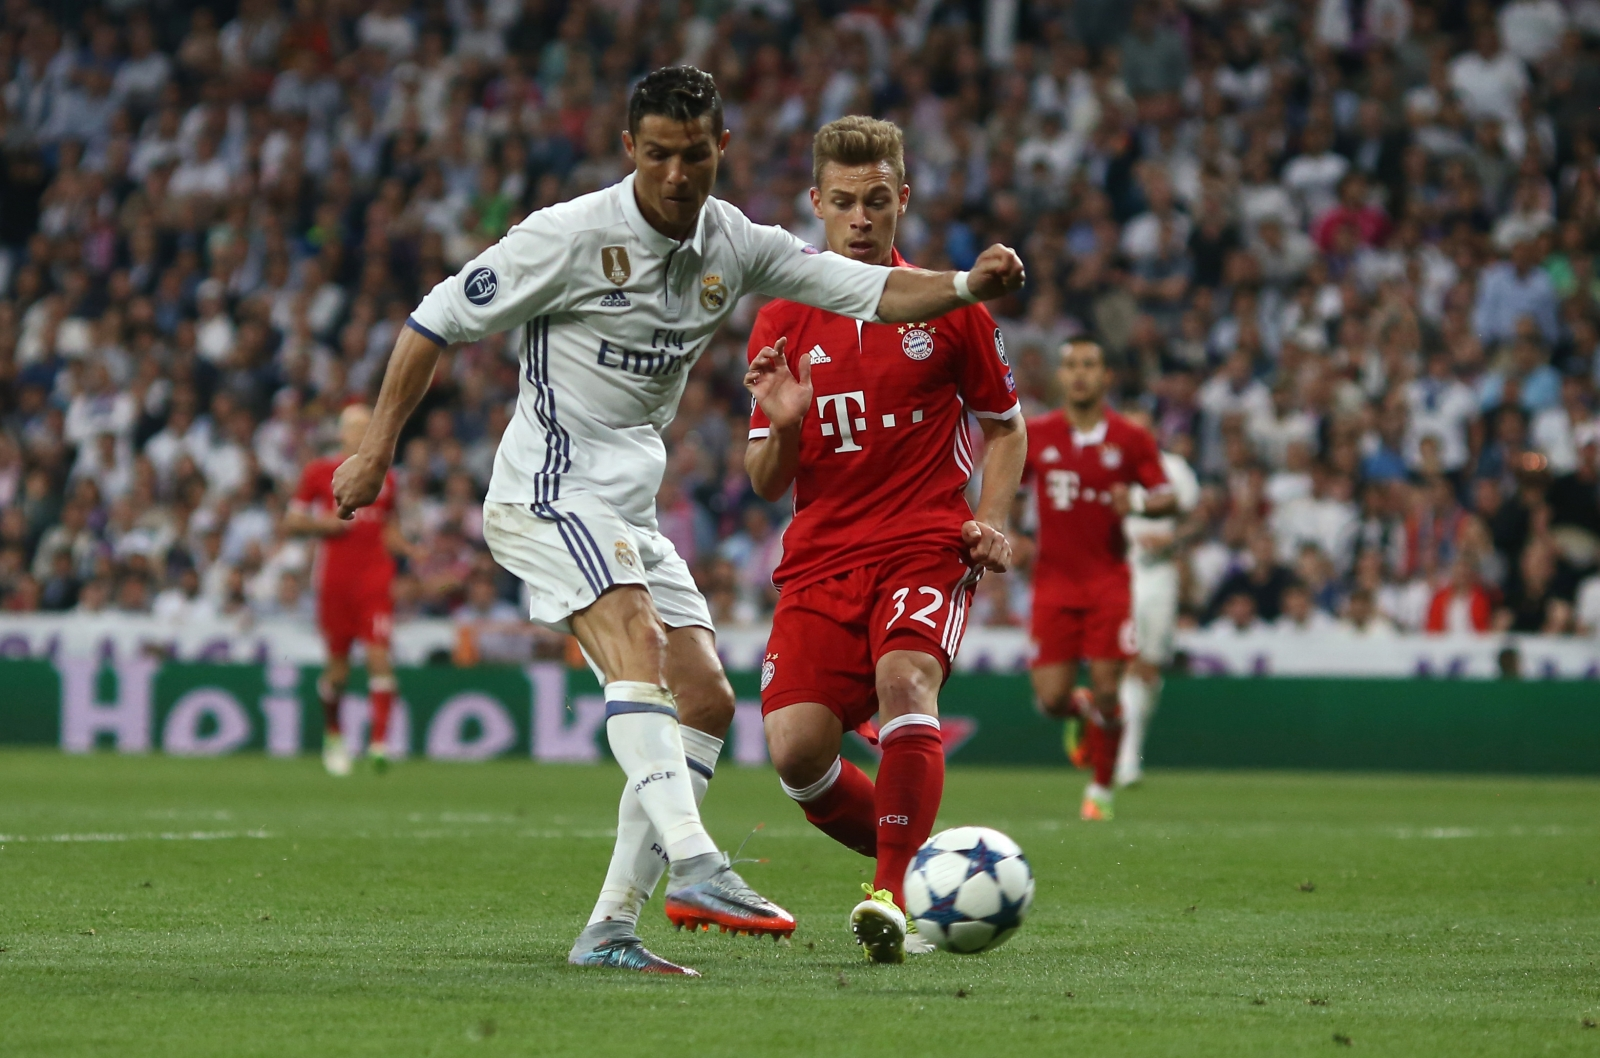 Real Madrid beat Bayern Munich to enter Champions League semis